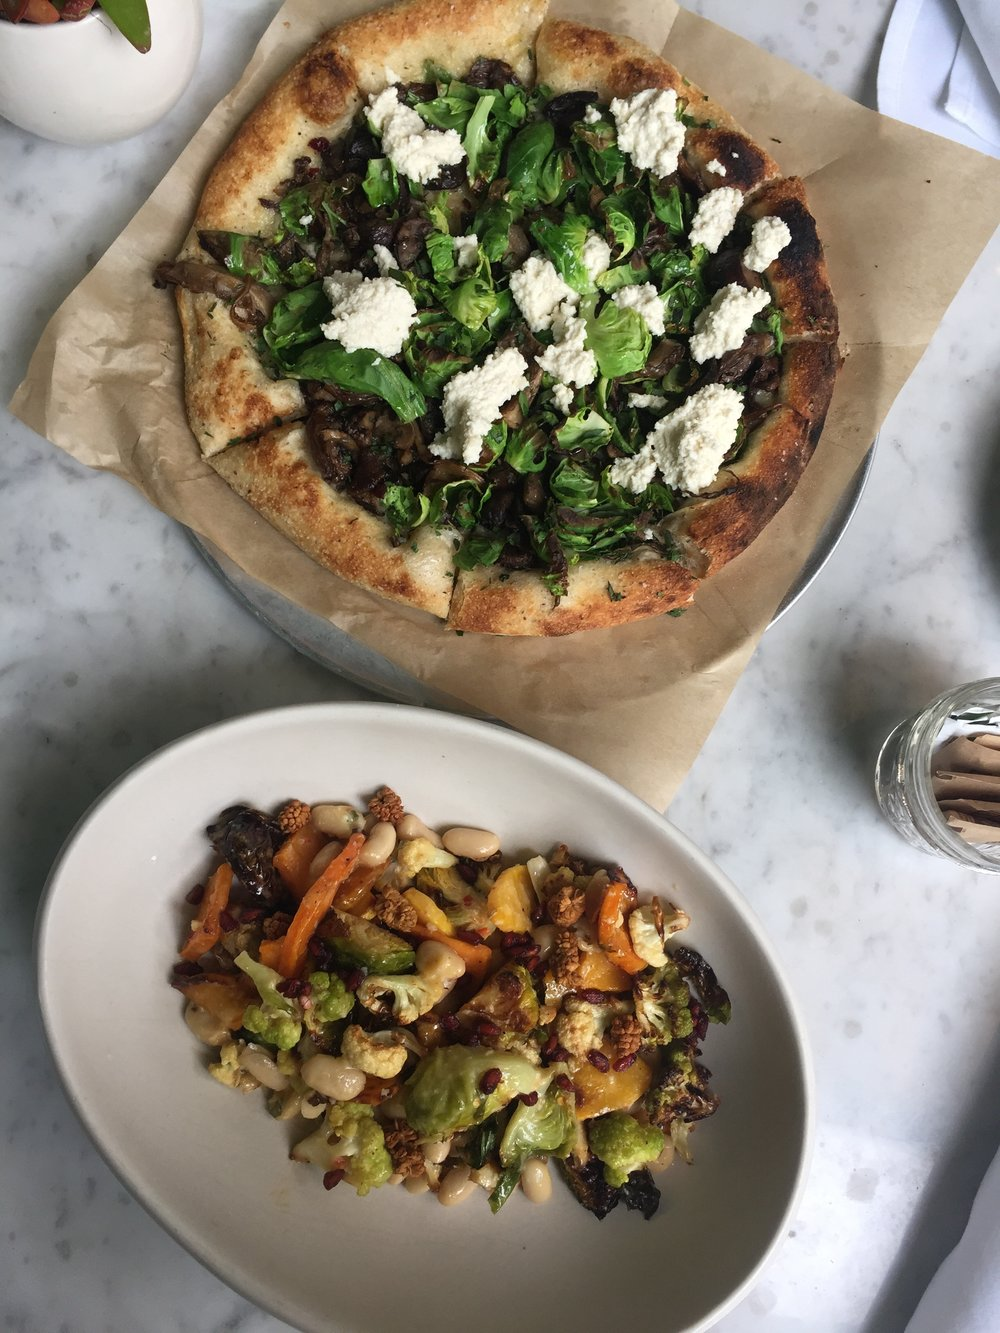 True Food Kitchen - seasonal salad + some kind of pizza. Both duh-licious.